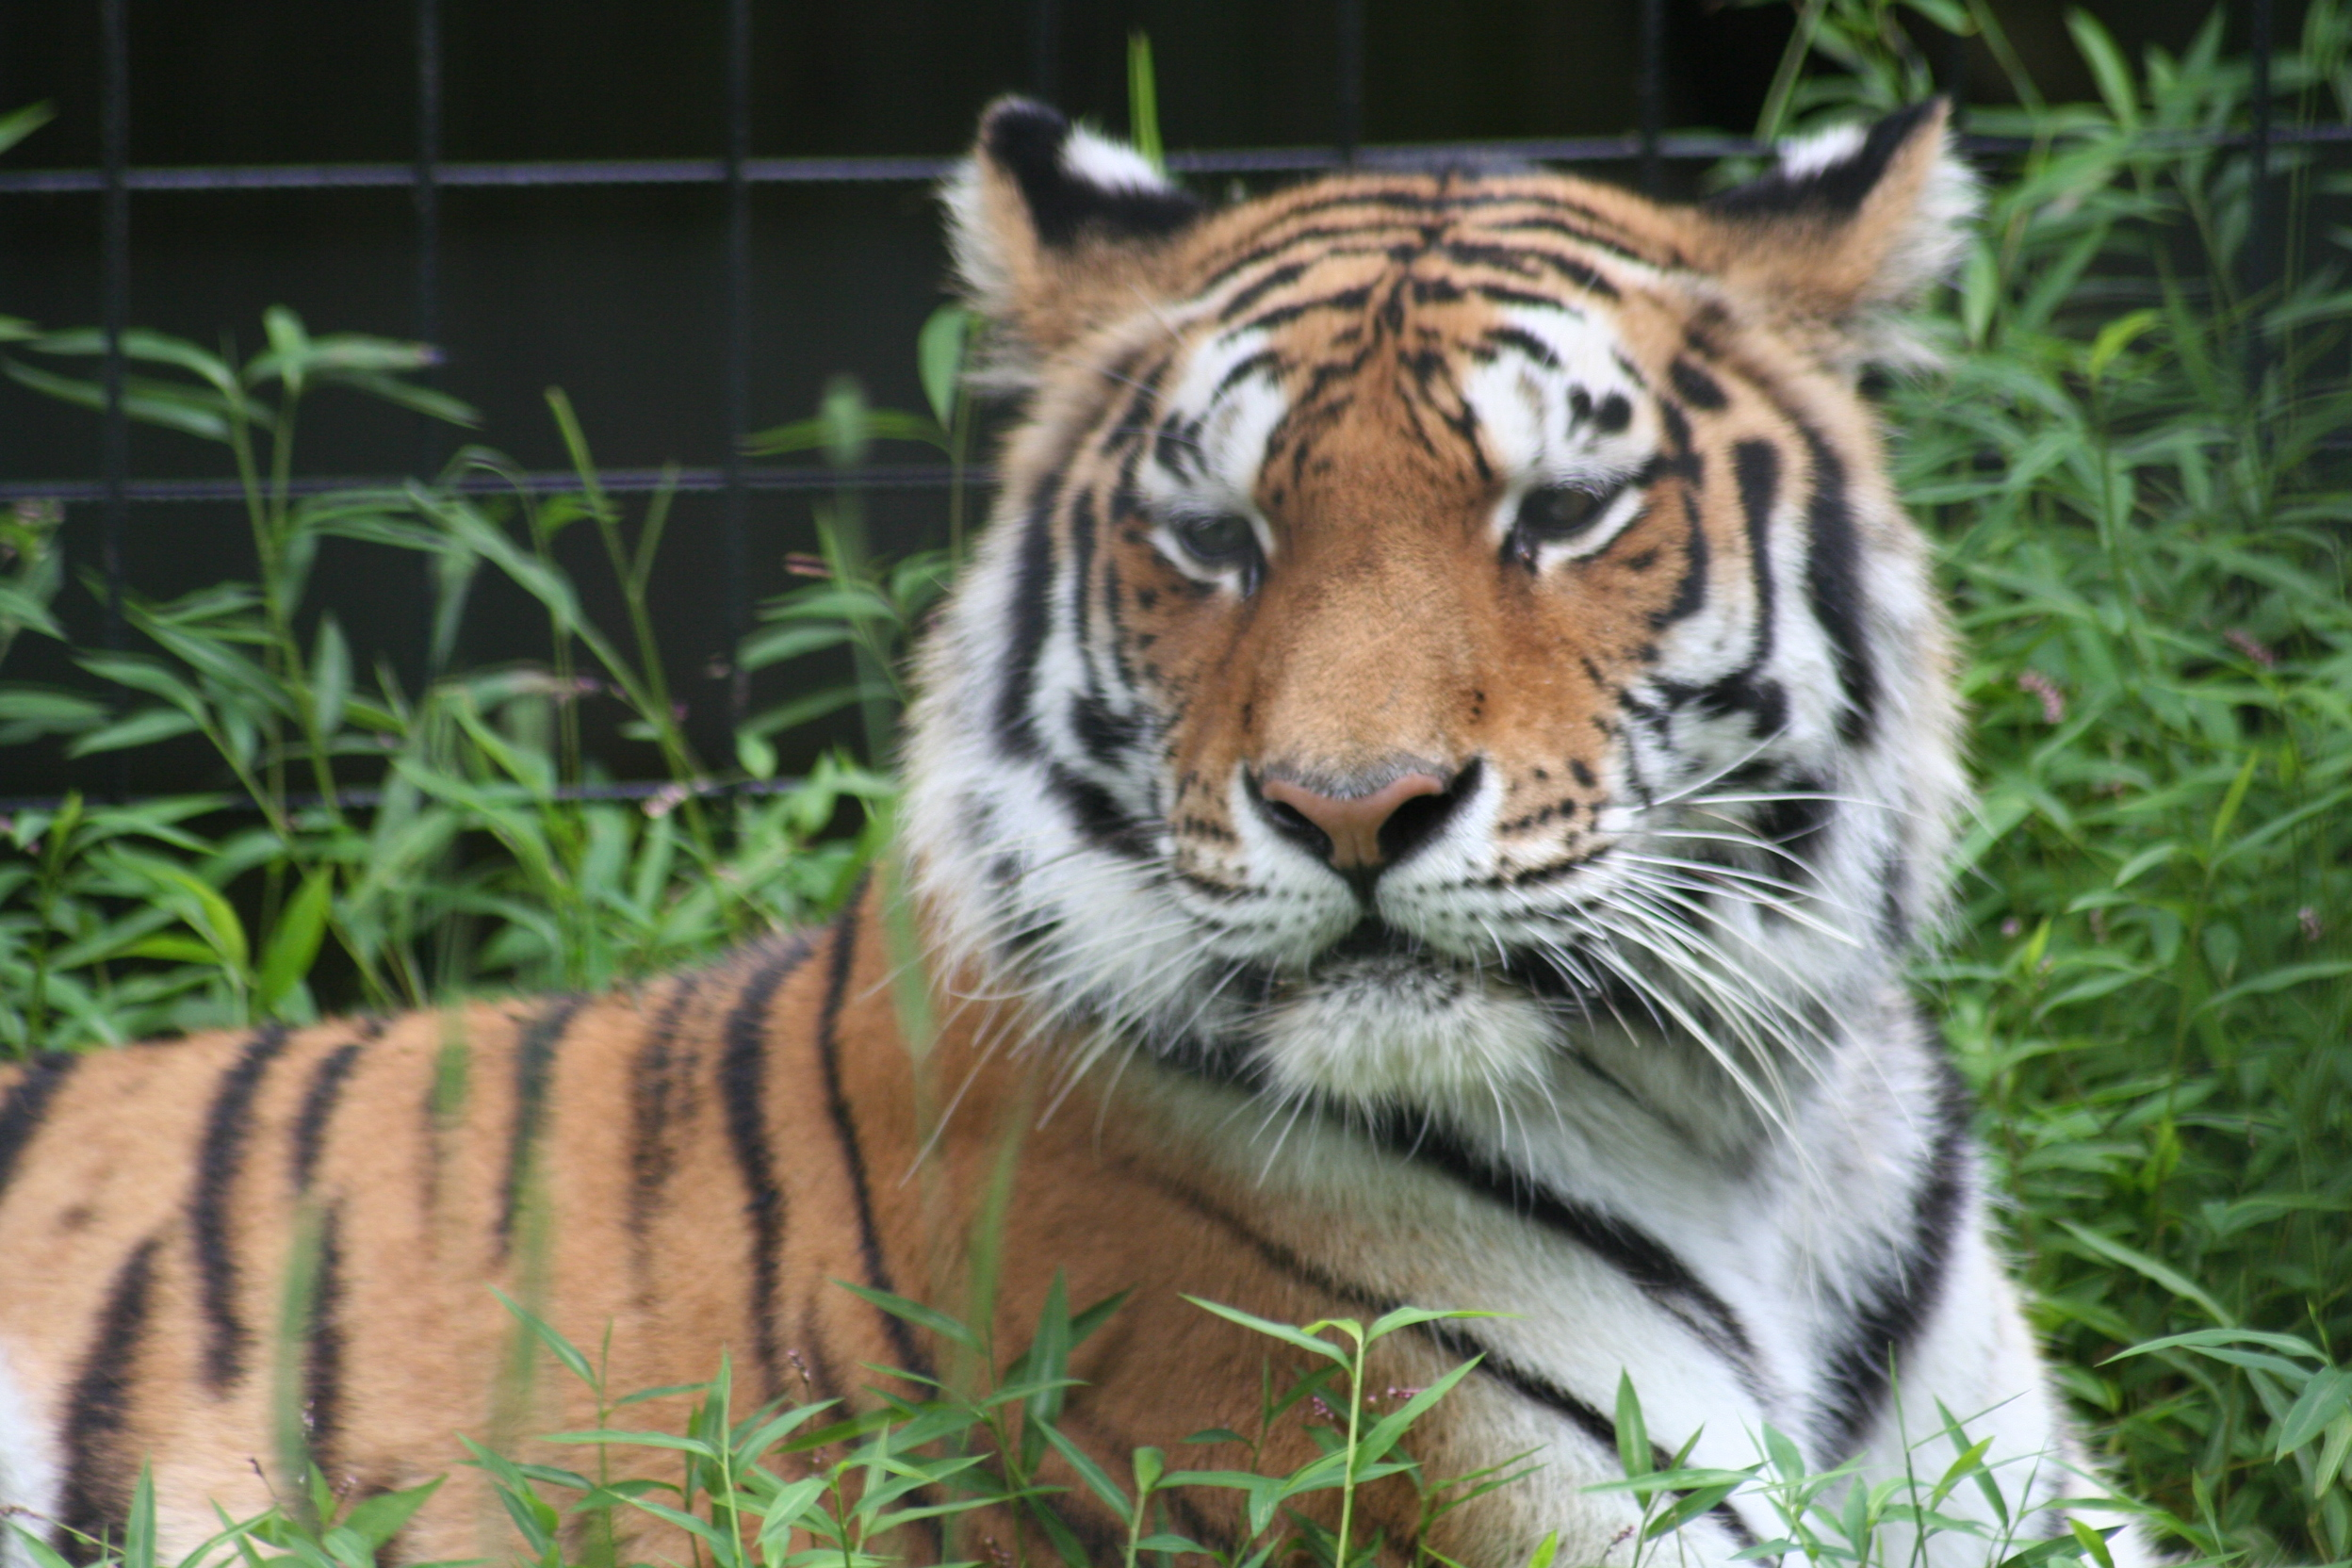 Brandywine Zoo's tiger to be transferred to Bronx Zoo